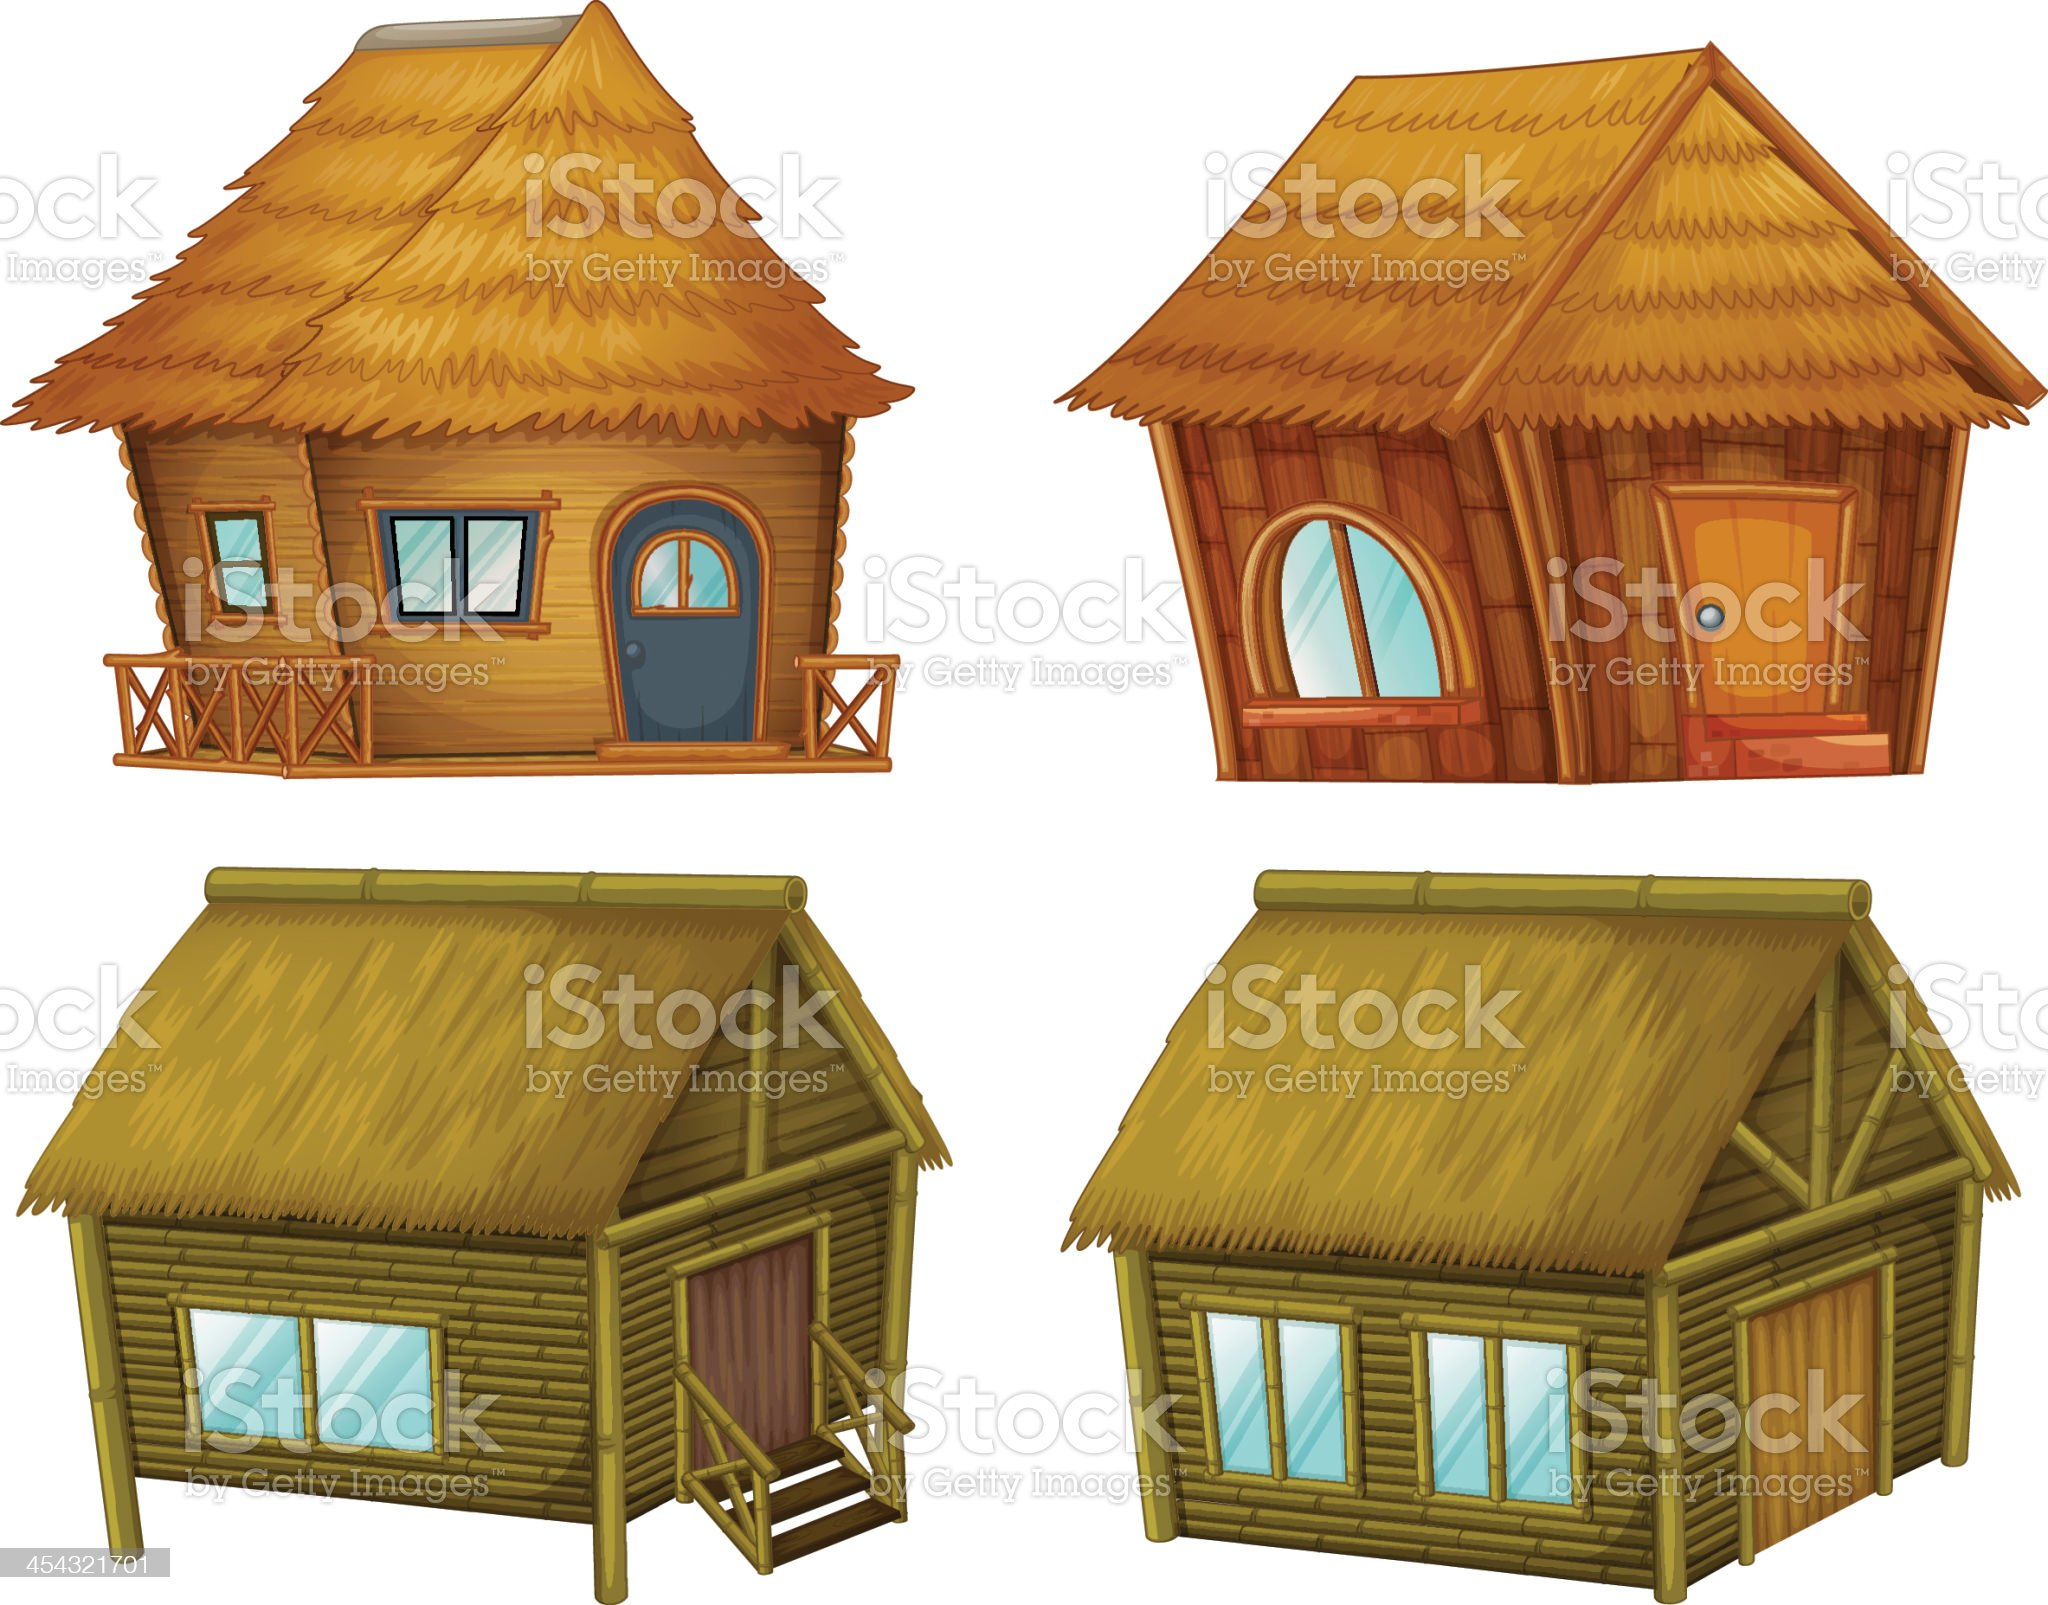 Set of cabins royalty-free stock vector art